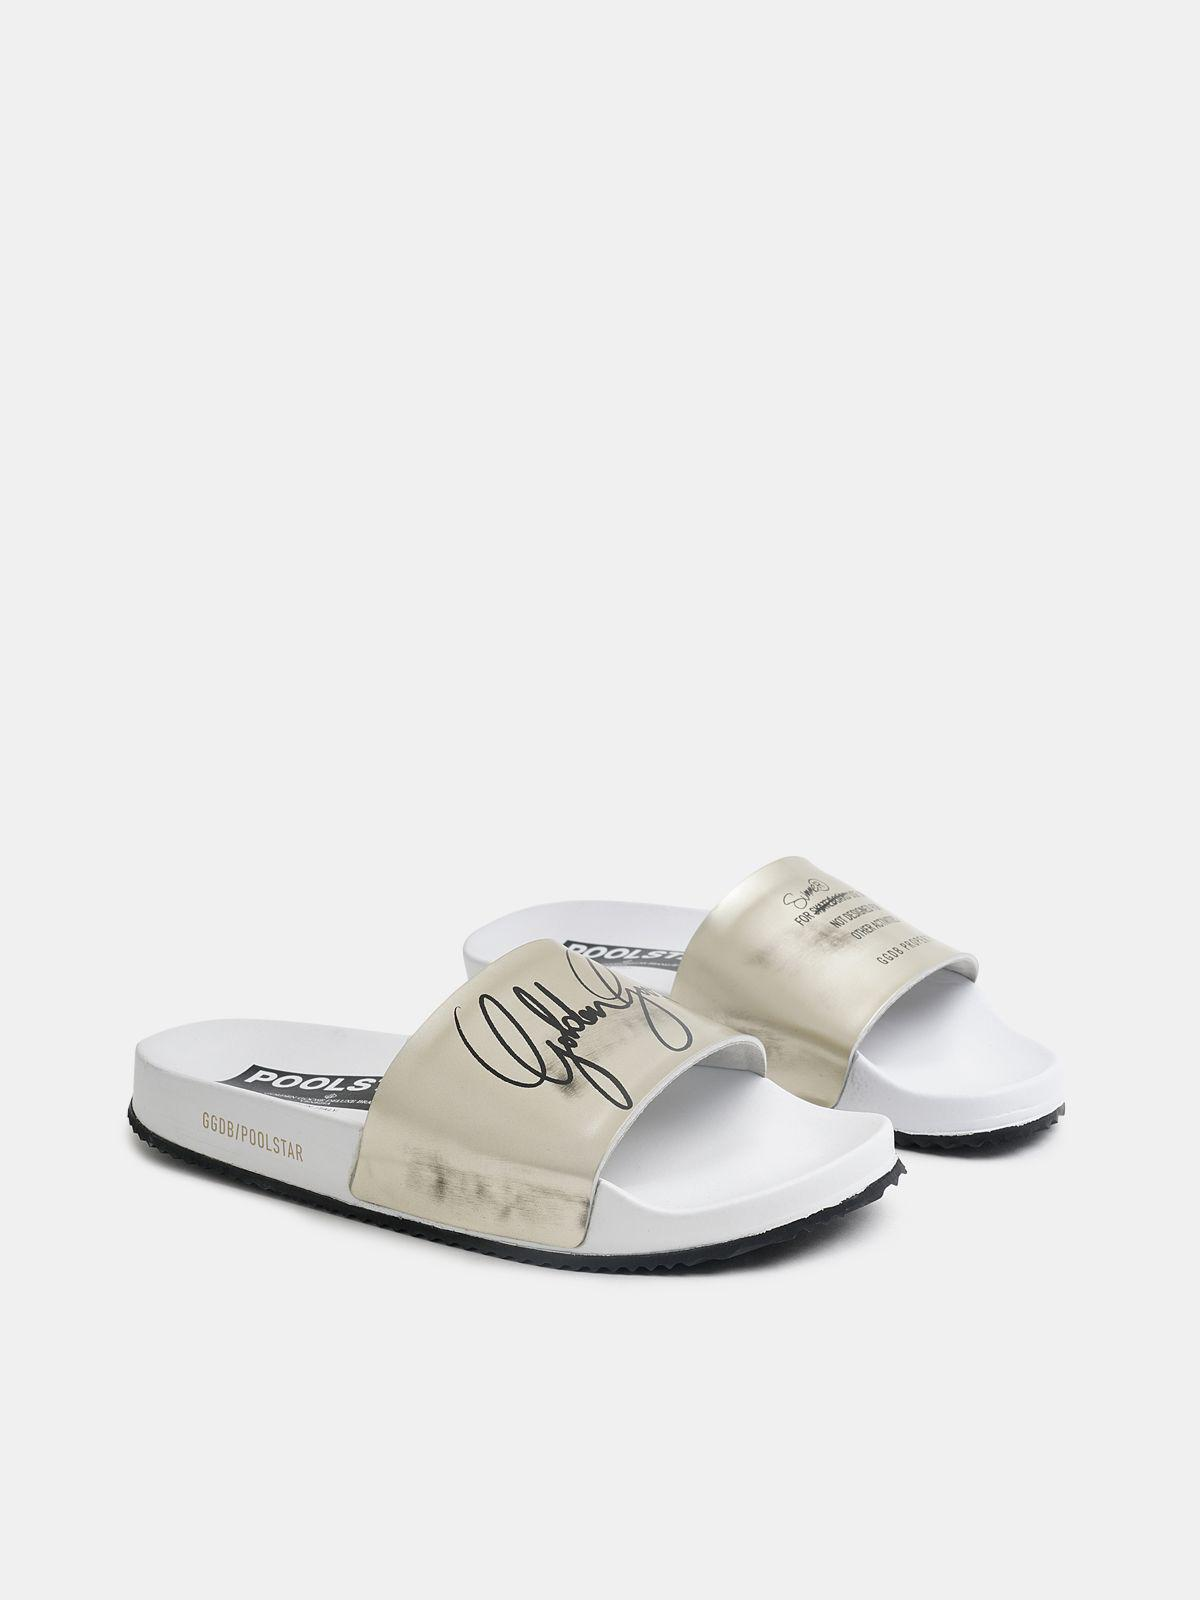 Women's white Poolstars with gold strap 2